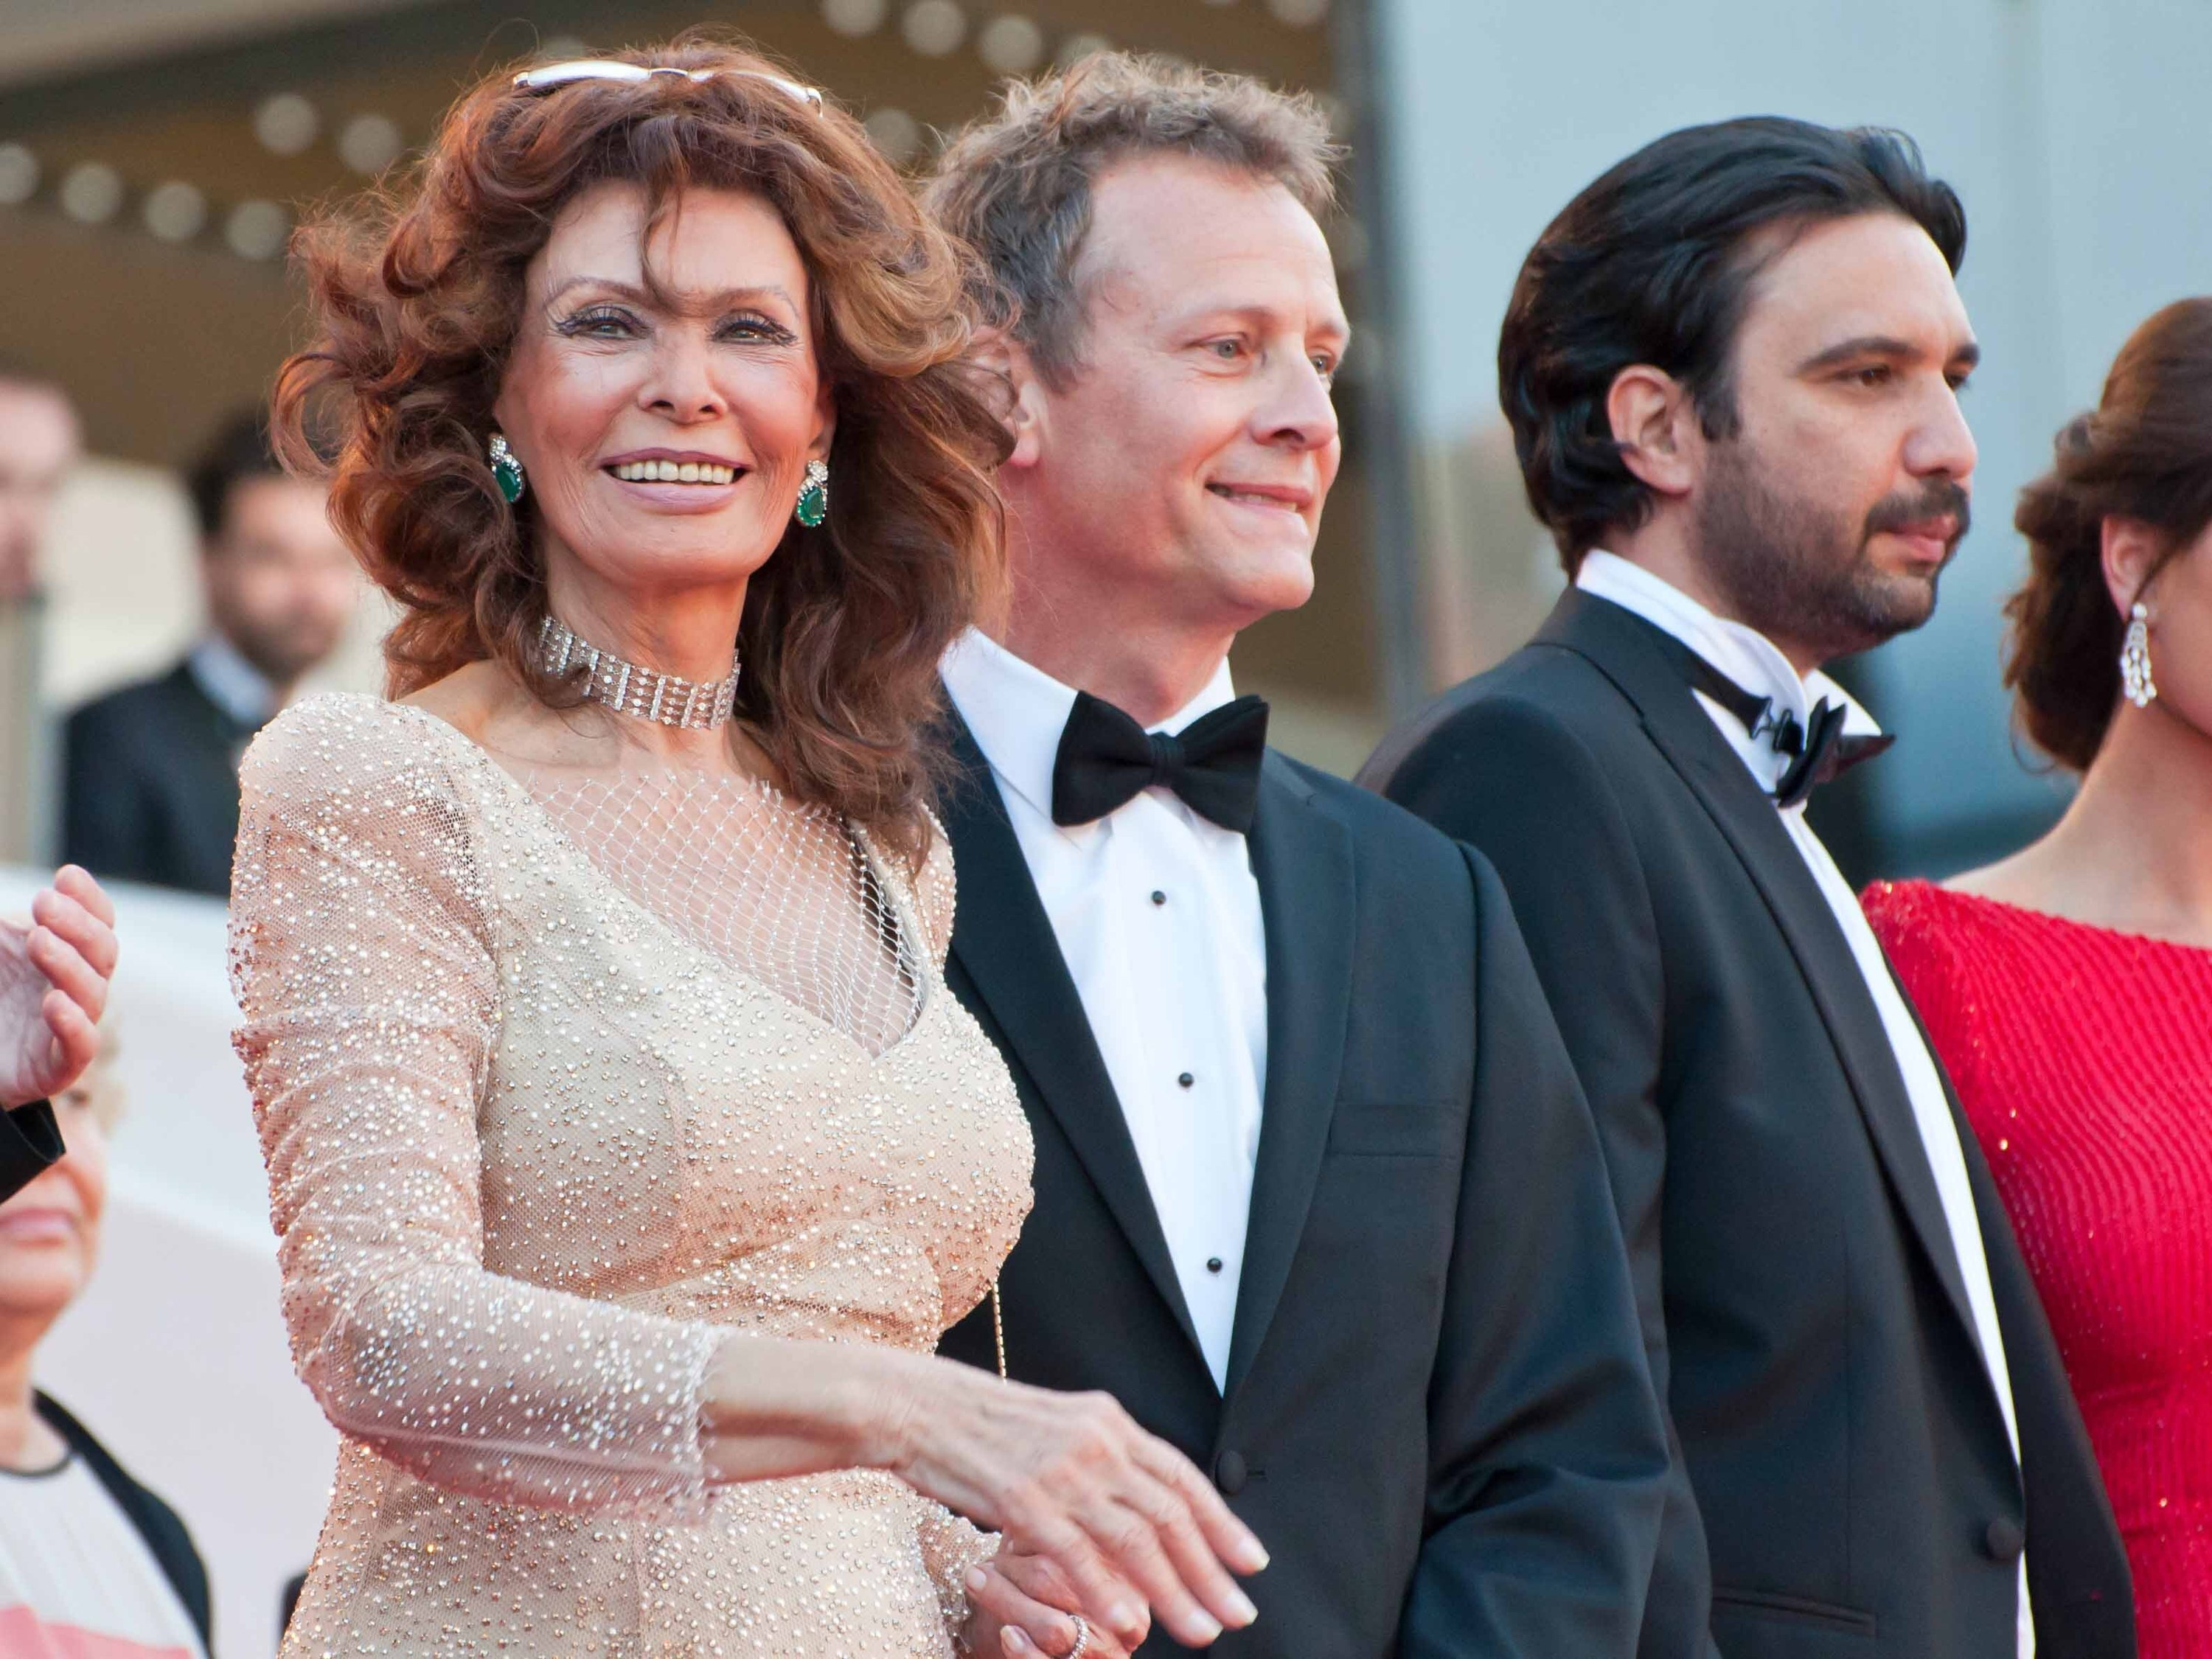 To The Delight Of Everyone Sophia Loren Un Retires To Star In A Netflix Movie Directed By Her Own Son